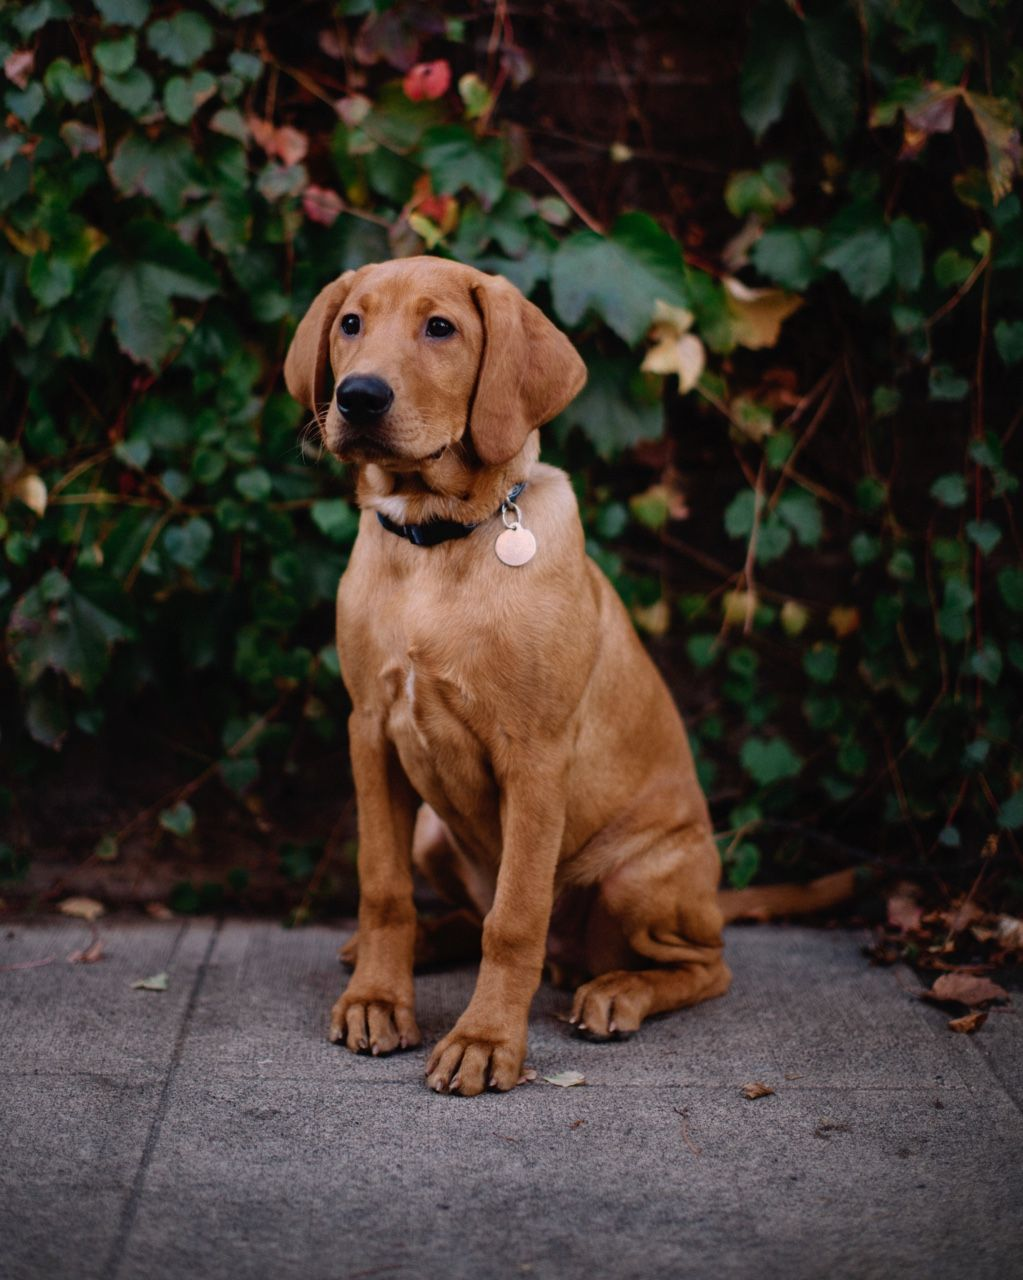 Pin by Kate Parman on woof. Dogs, Fox red labrador